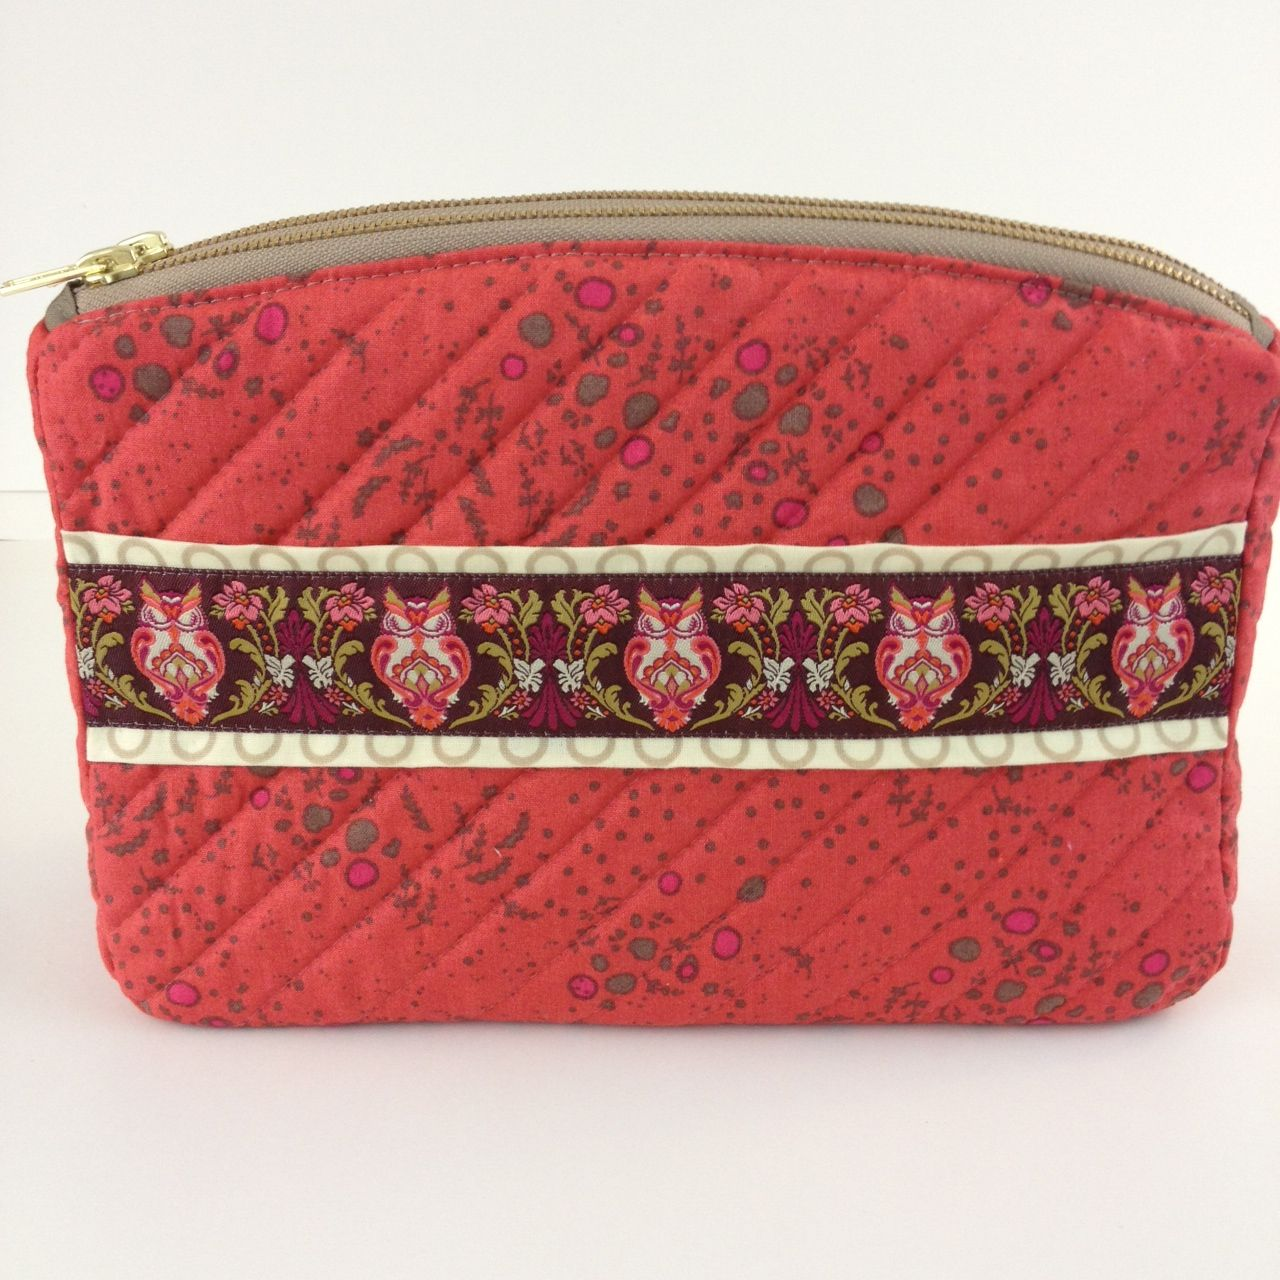 Sew Sweetness Filigree Double-Zip Pouch sewn by Terry